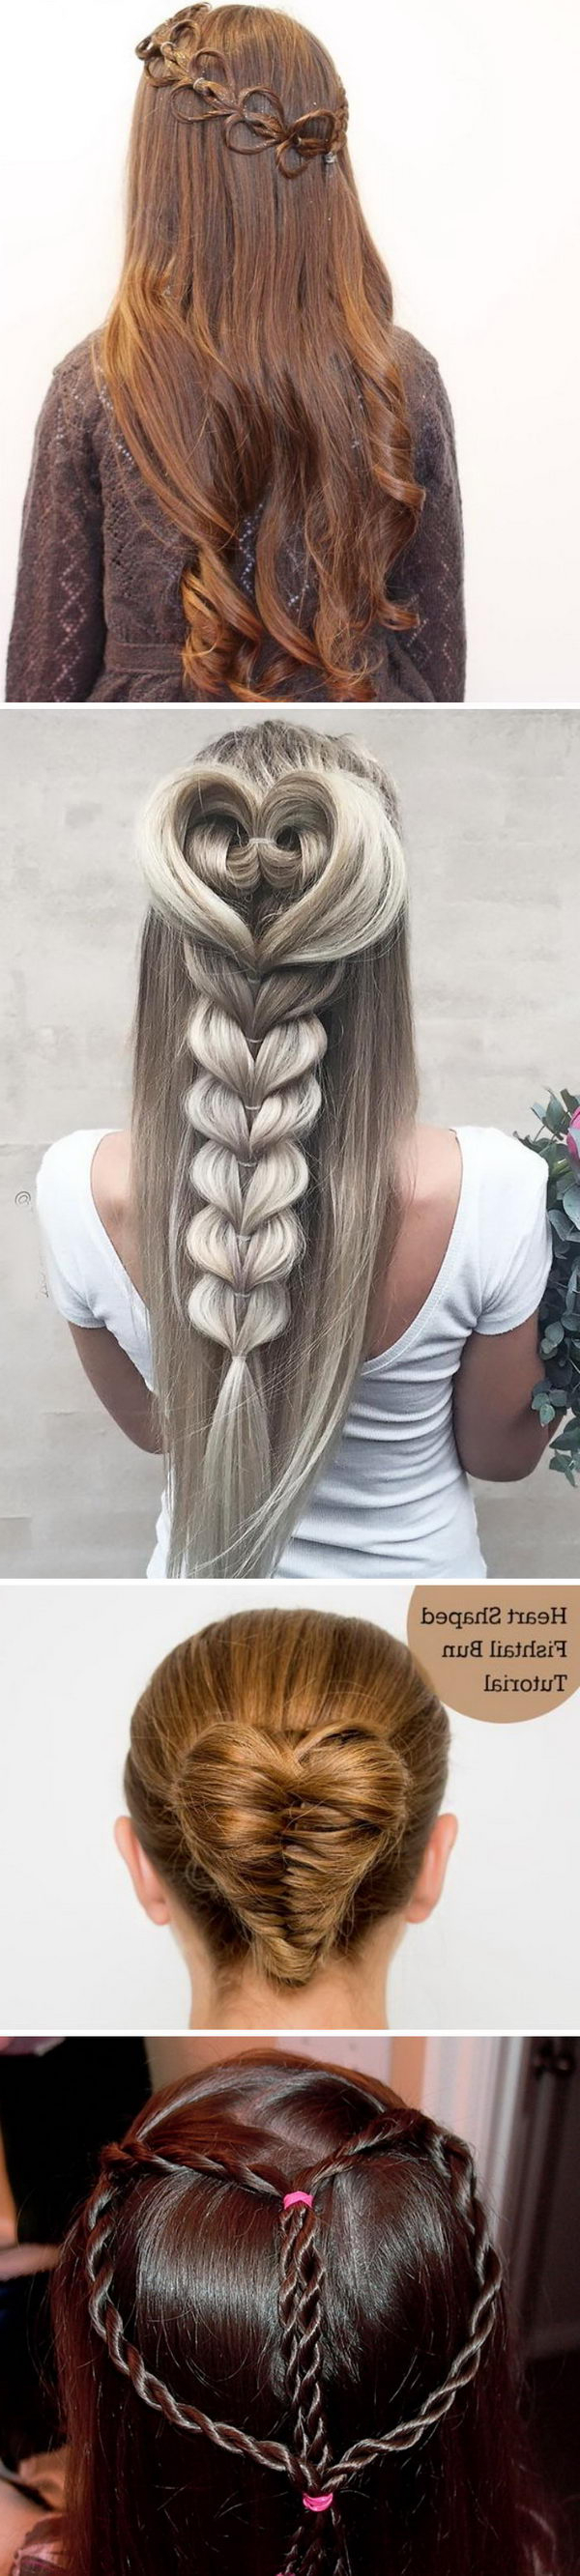 15+ Great Valentine's Day Hairstyles For Girls Within Famous Heart Shaped Fishtail Under Braid Hairstyles (View 1 of 20)